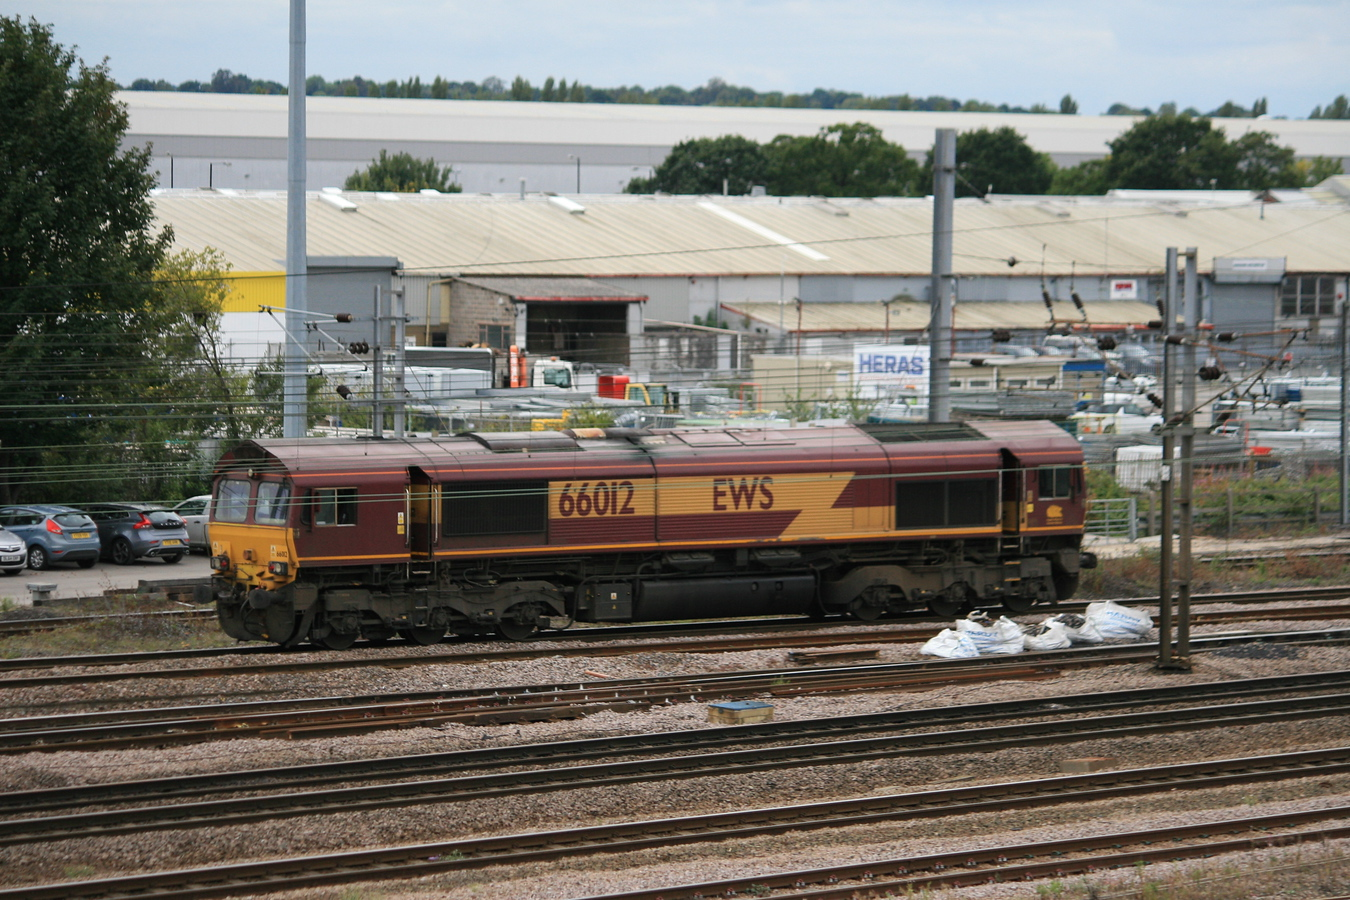 66012_Doncaster_20092015 (245)_dbs